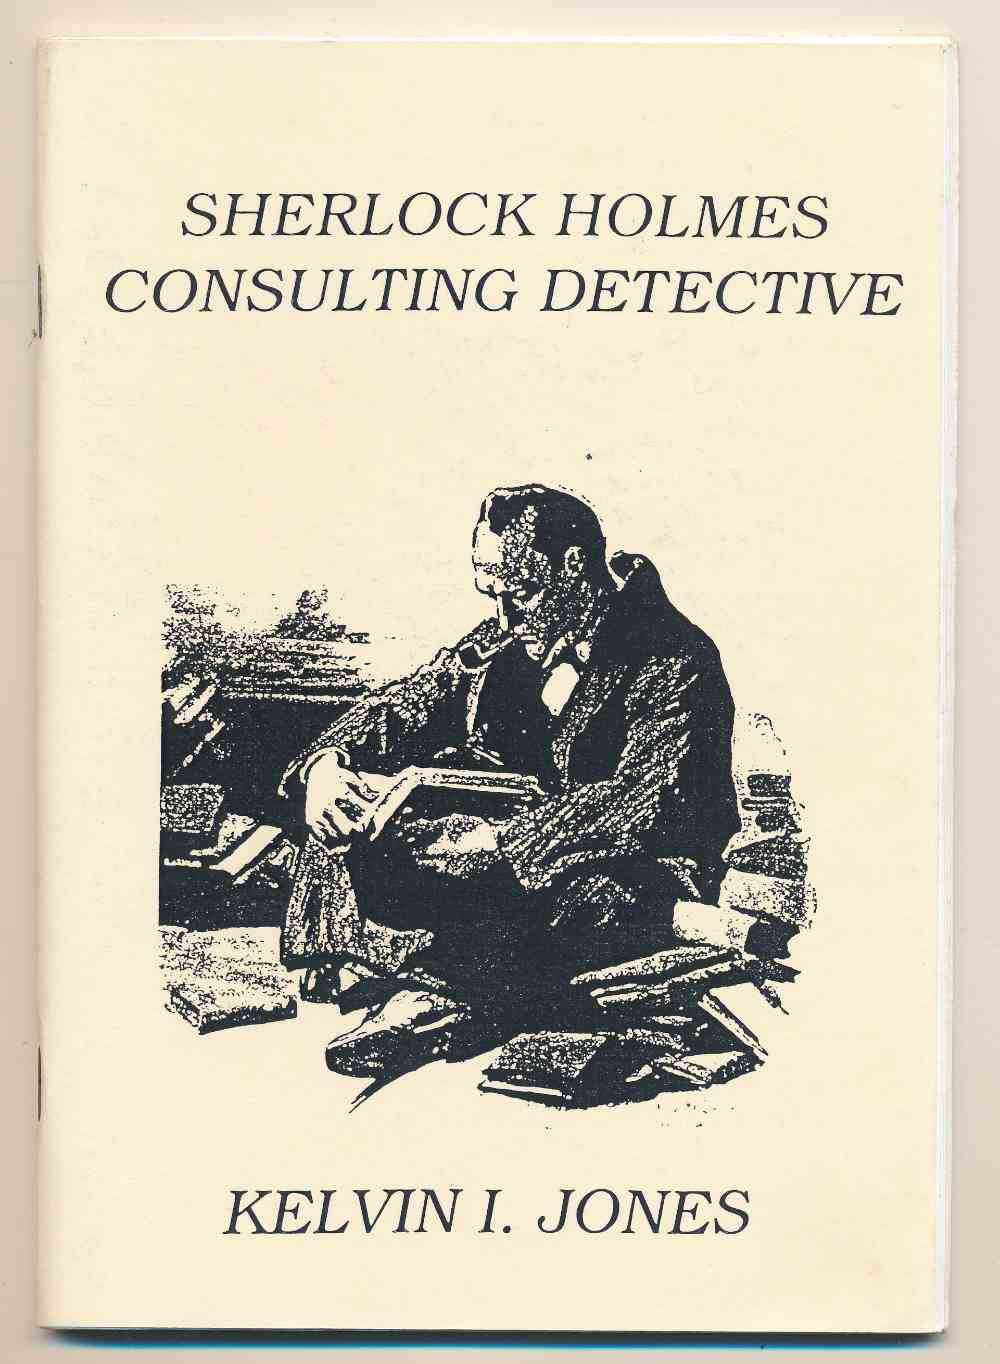 Sherlock Holmes consulting detective. Volume 3 : the great return